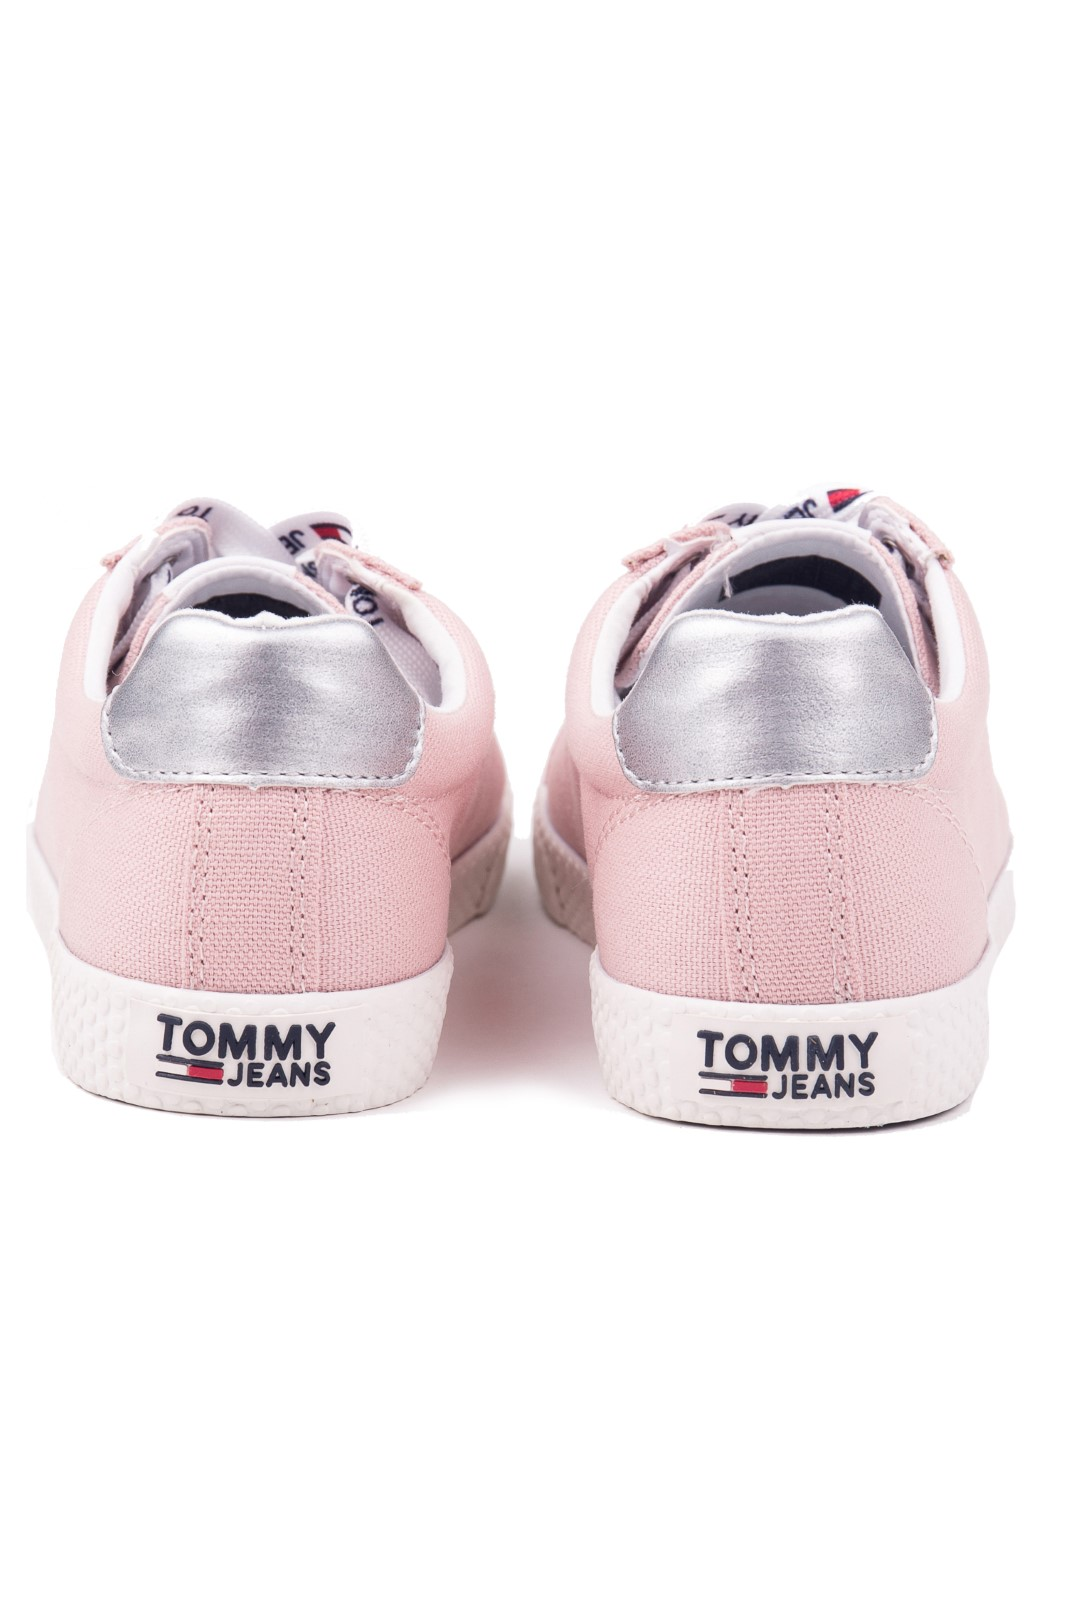 Tommy Hilfiger pudrové tenisky Tommy Jeans Casual Sneaker Lotus